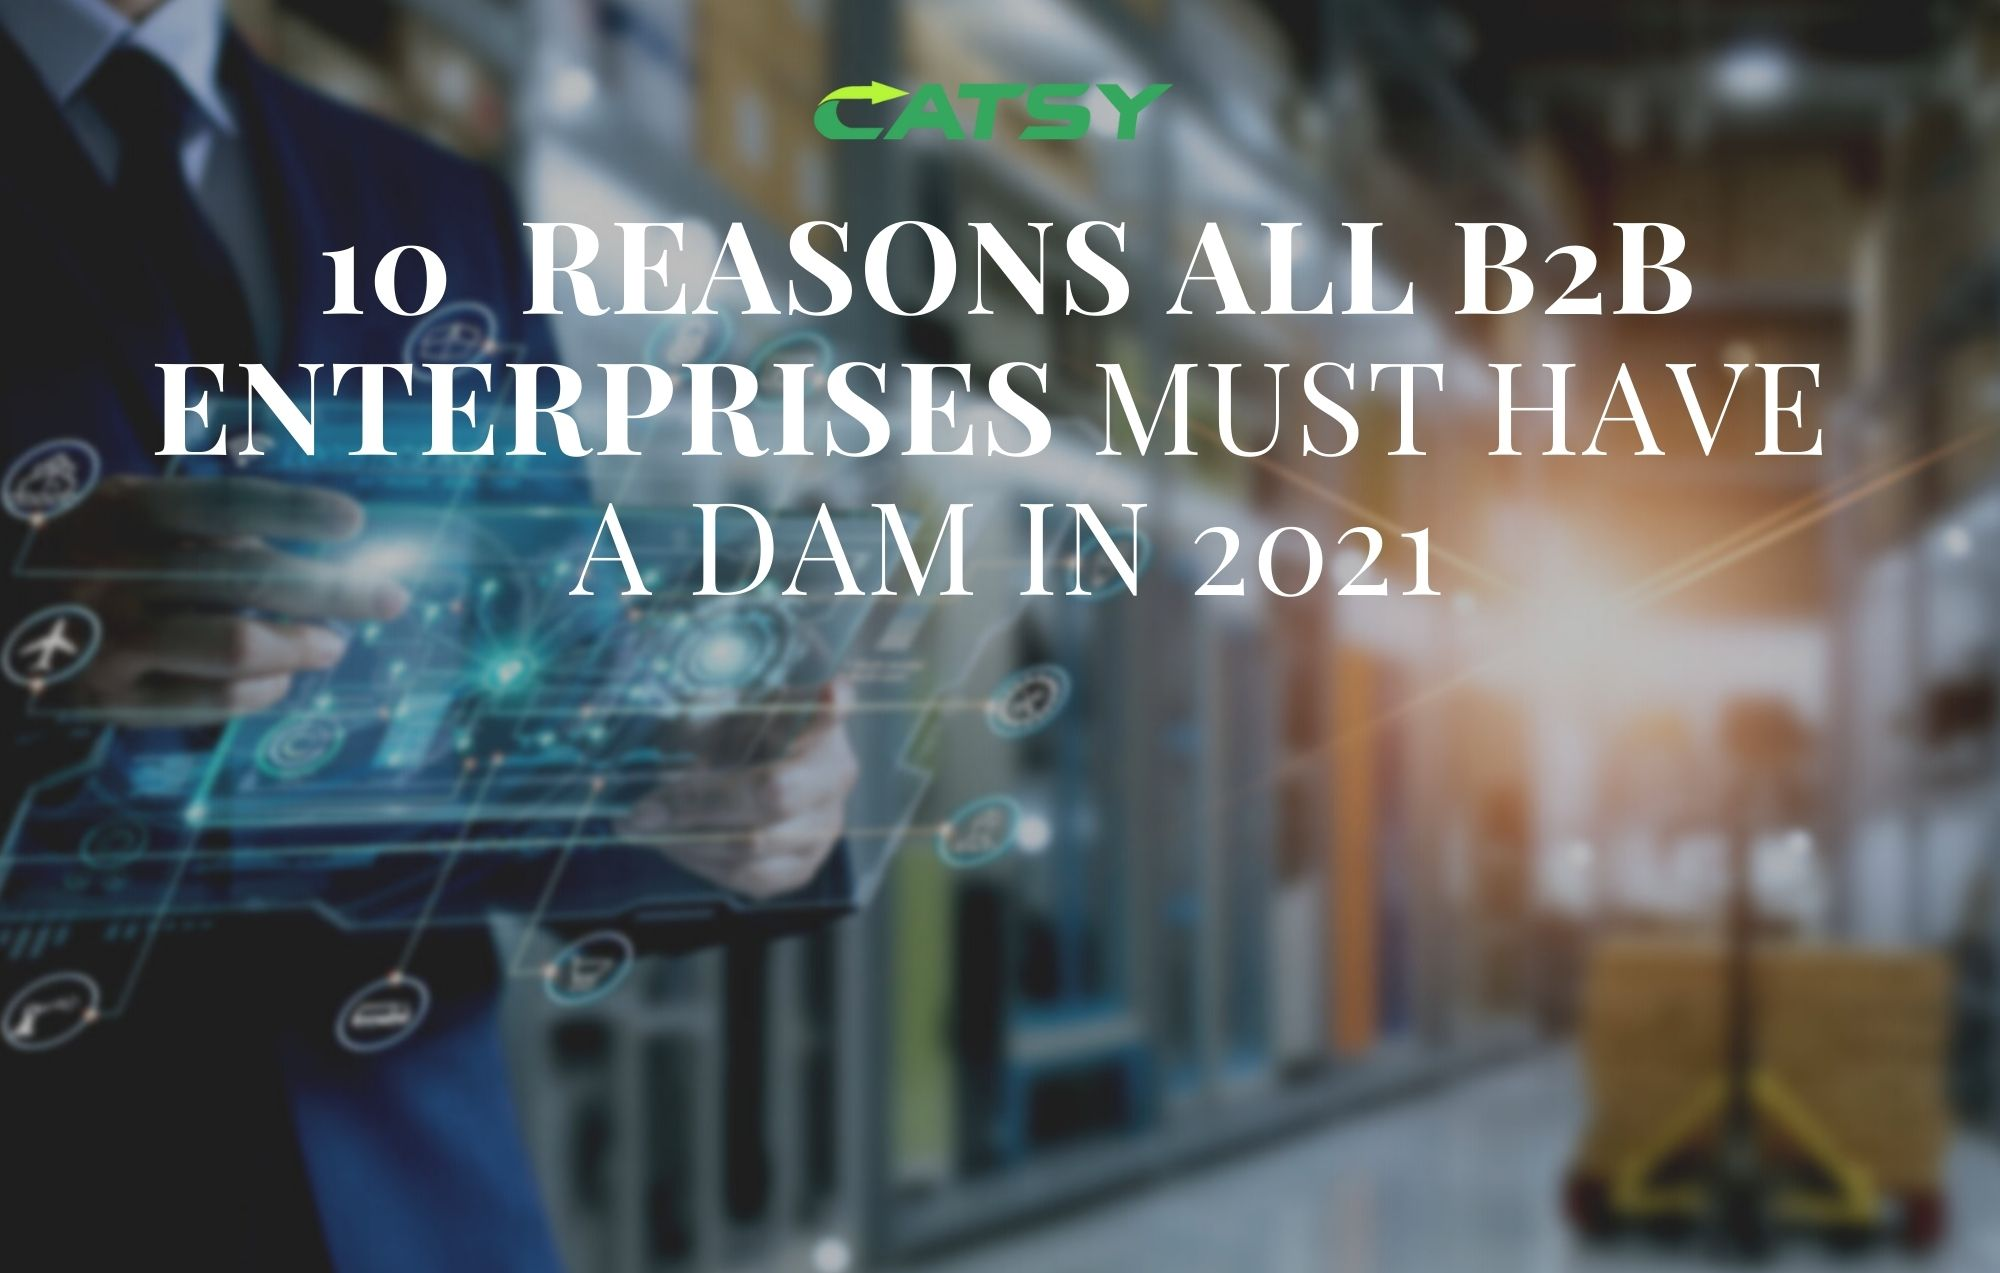 10 Reasons all B2B eCommerce Enterprises Must Have a DAM in 2021.